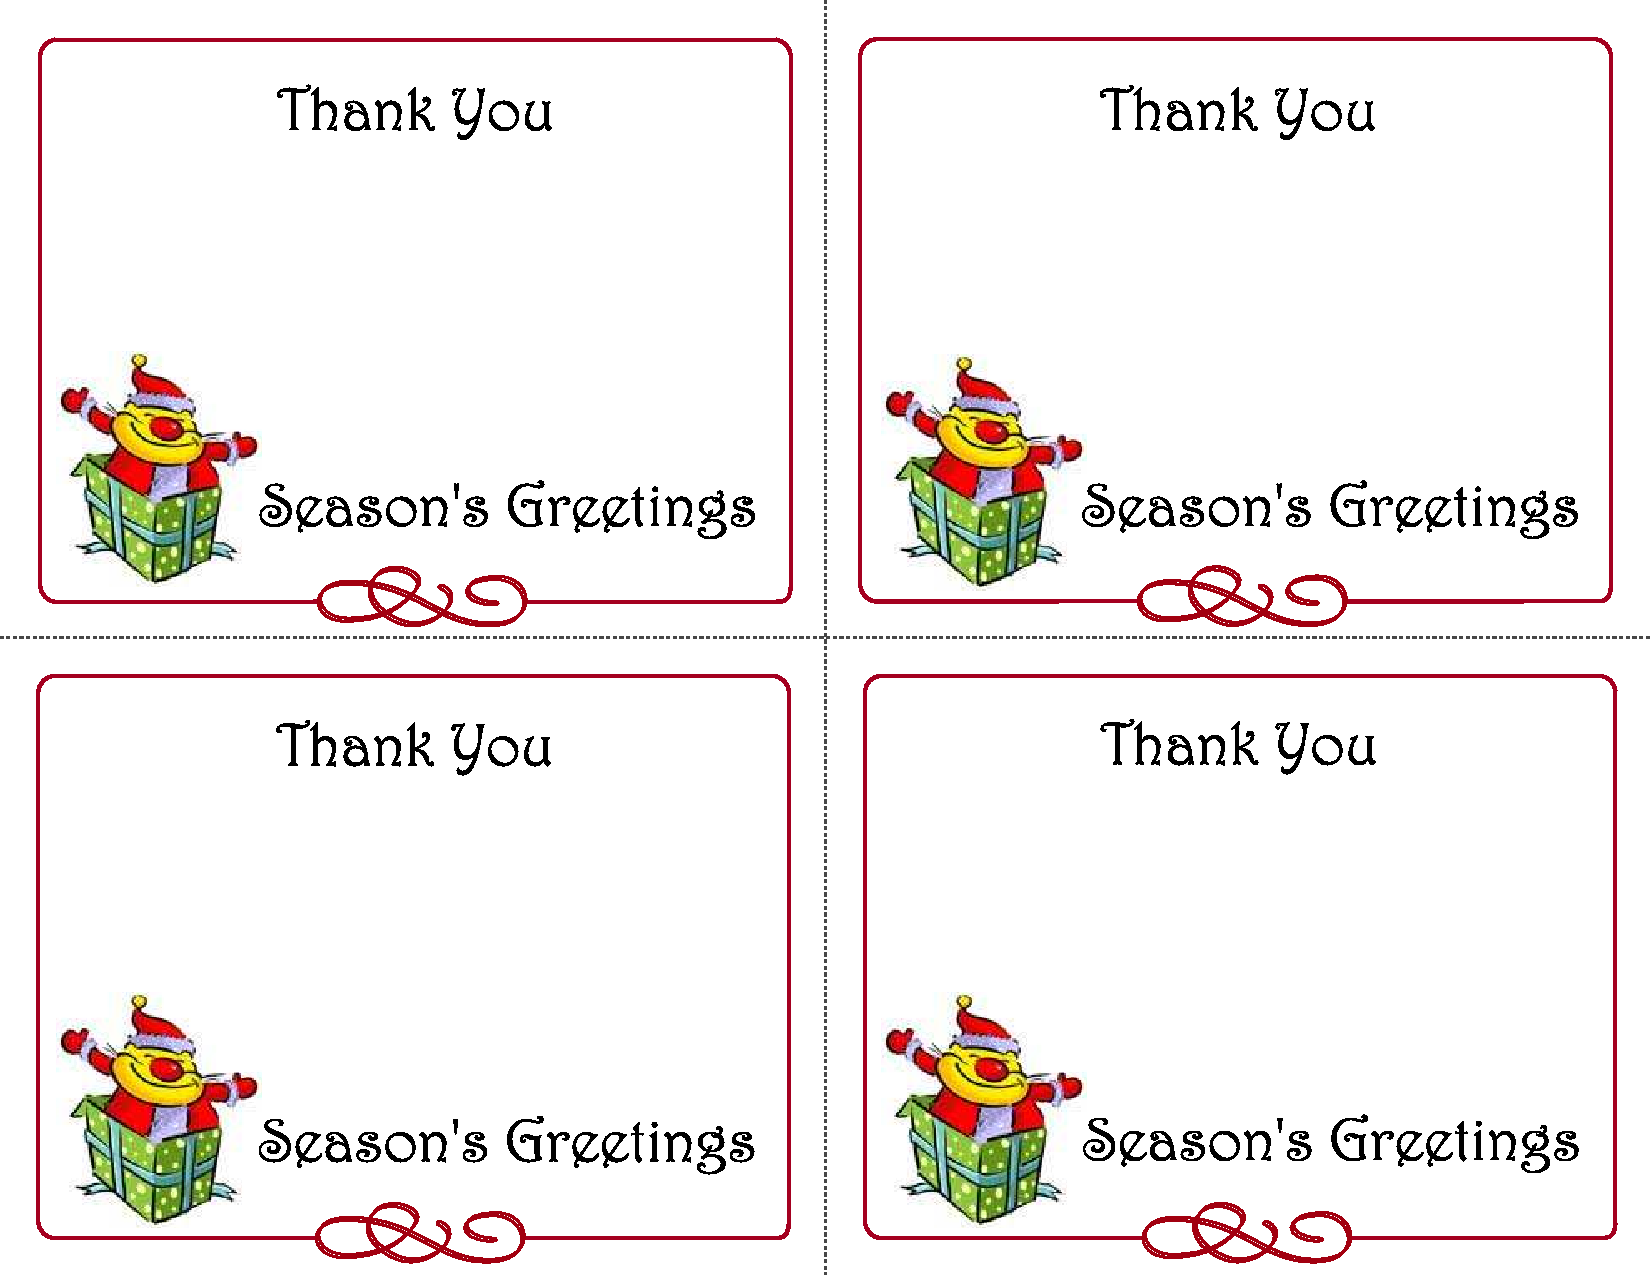 21 Best Printable Christmas Thank You Card Templates - printablee.com Throughout Christmas Thank You Card Templates Free